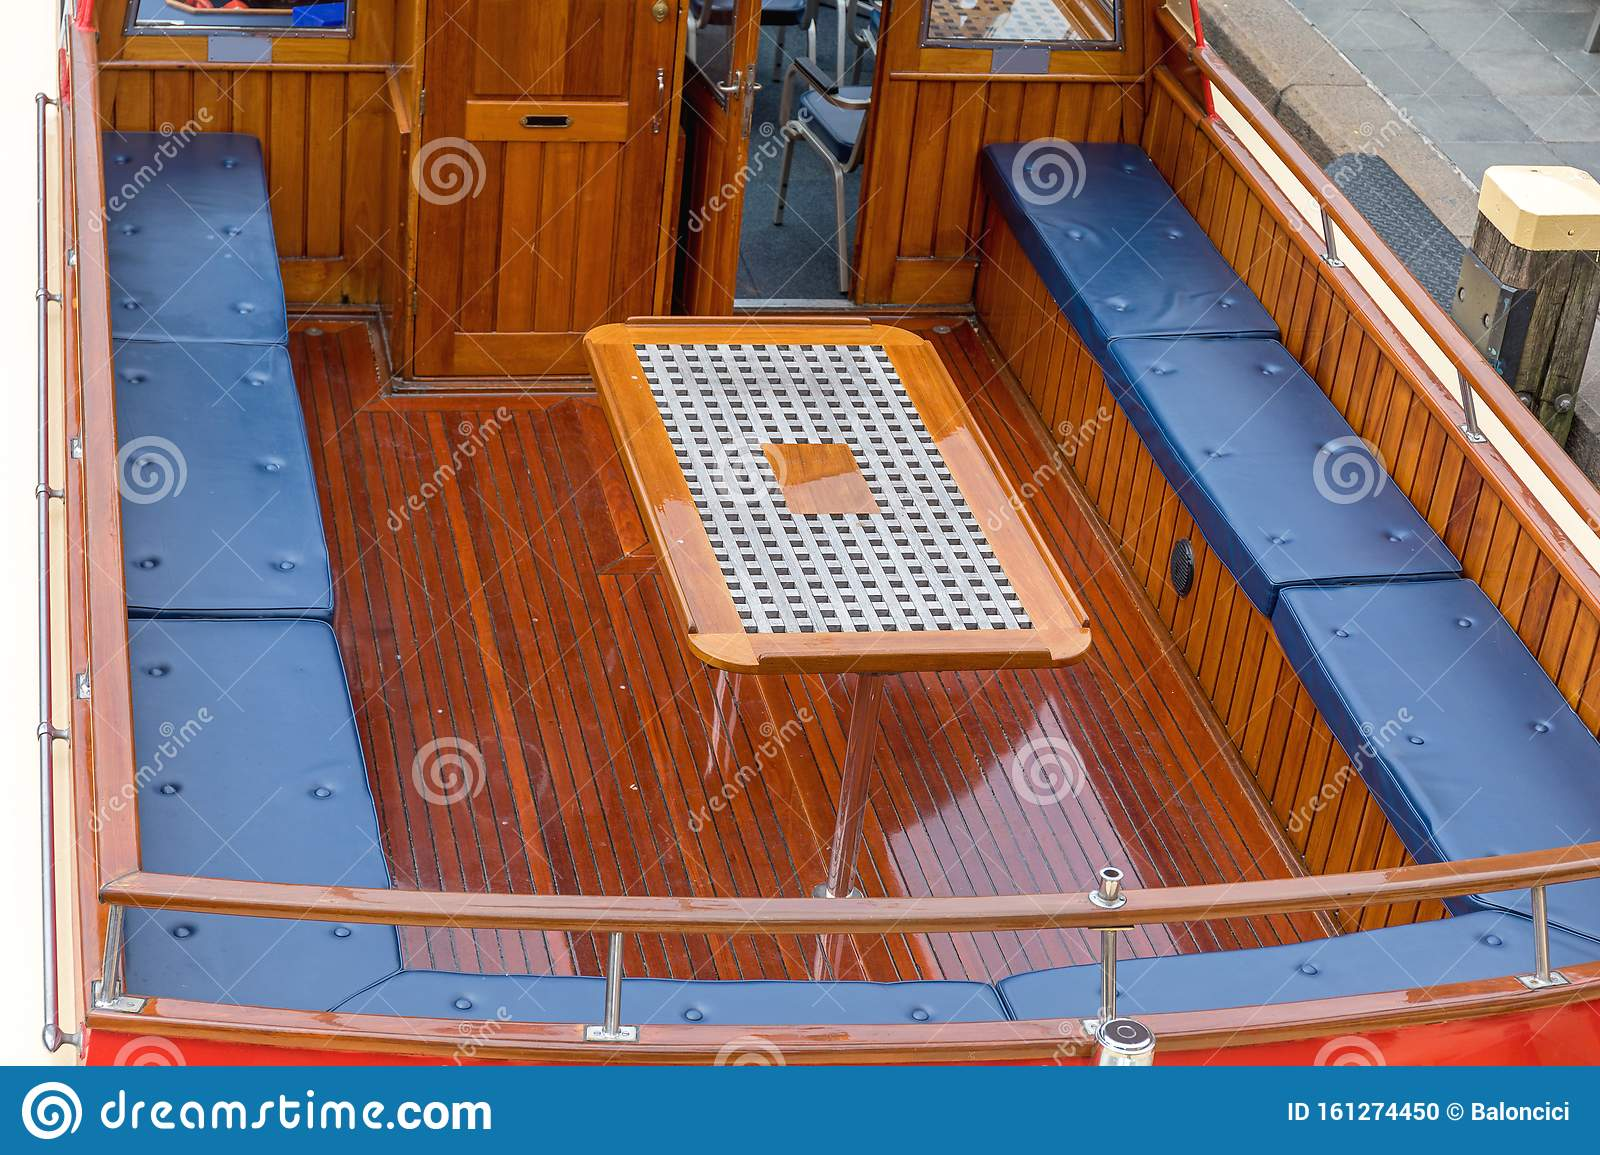 Picture of: Boat Deck Seating Stock Photo Image Of Vessel Seating 161274450